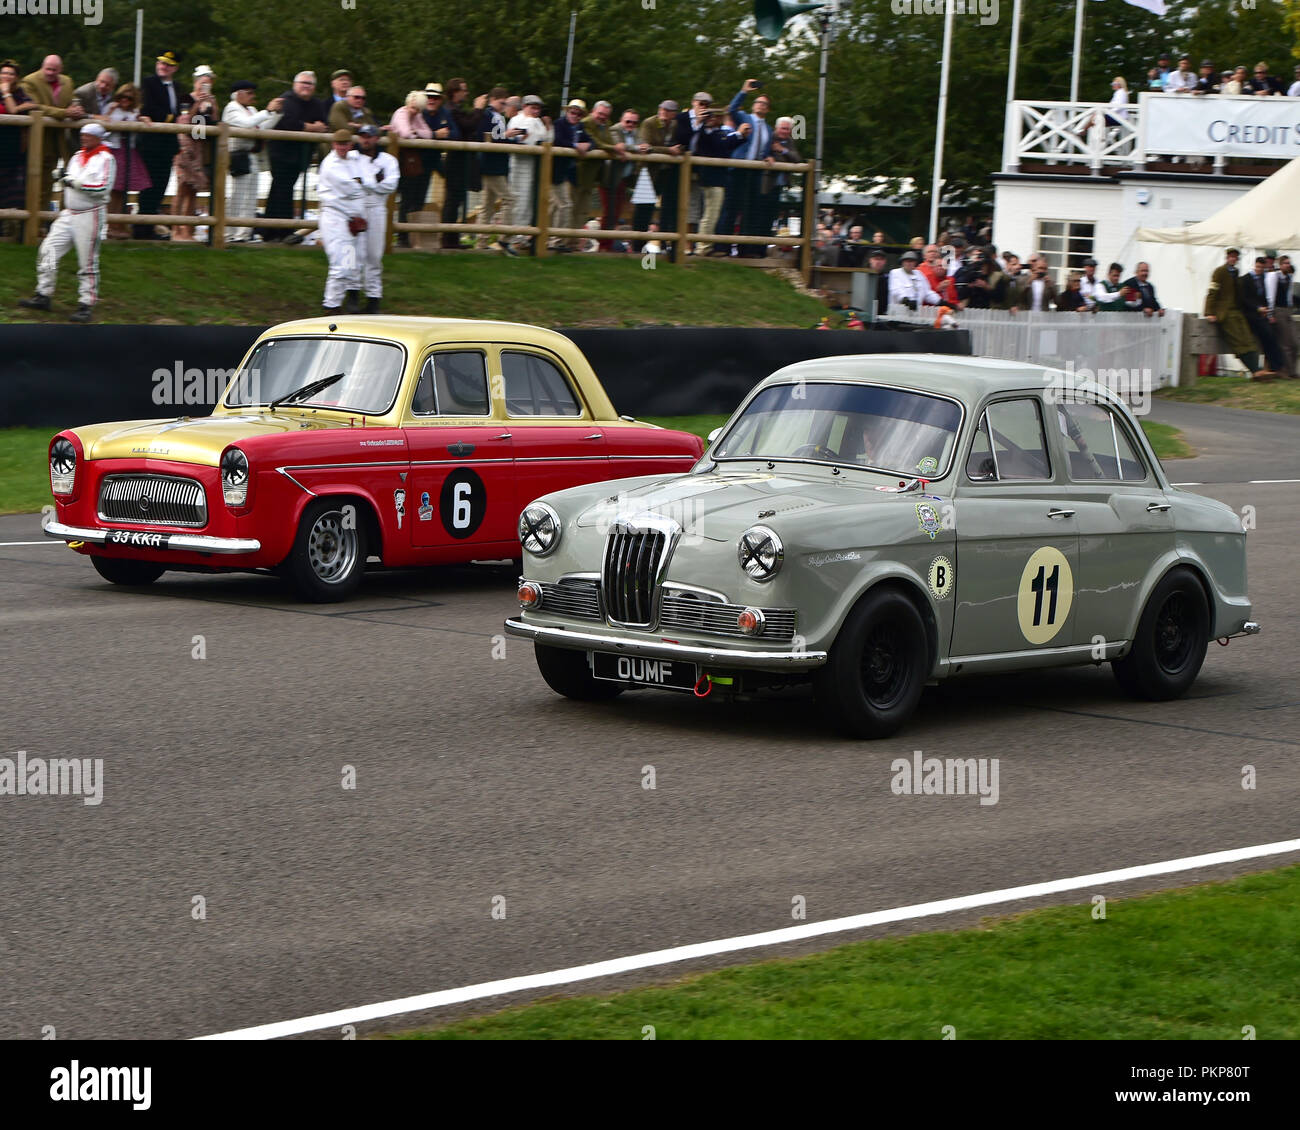 Ford Prefect Stock Photos & Ford Prefect Stock Images